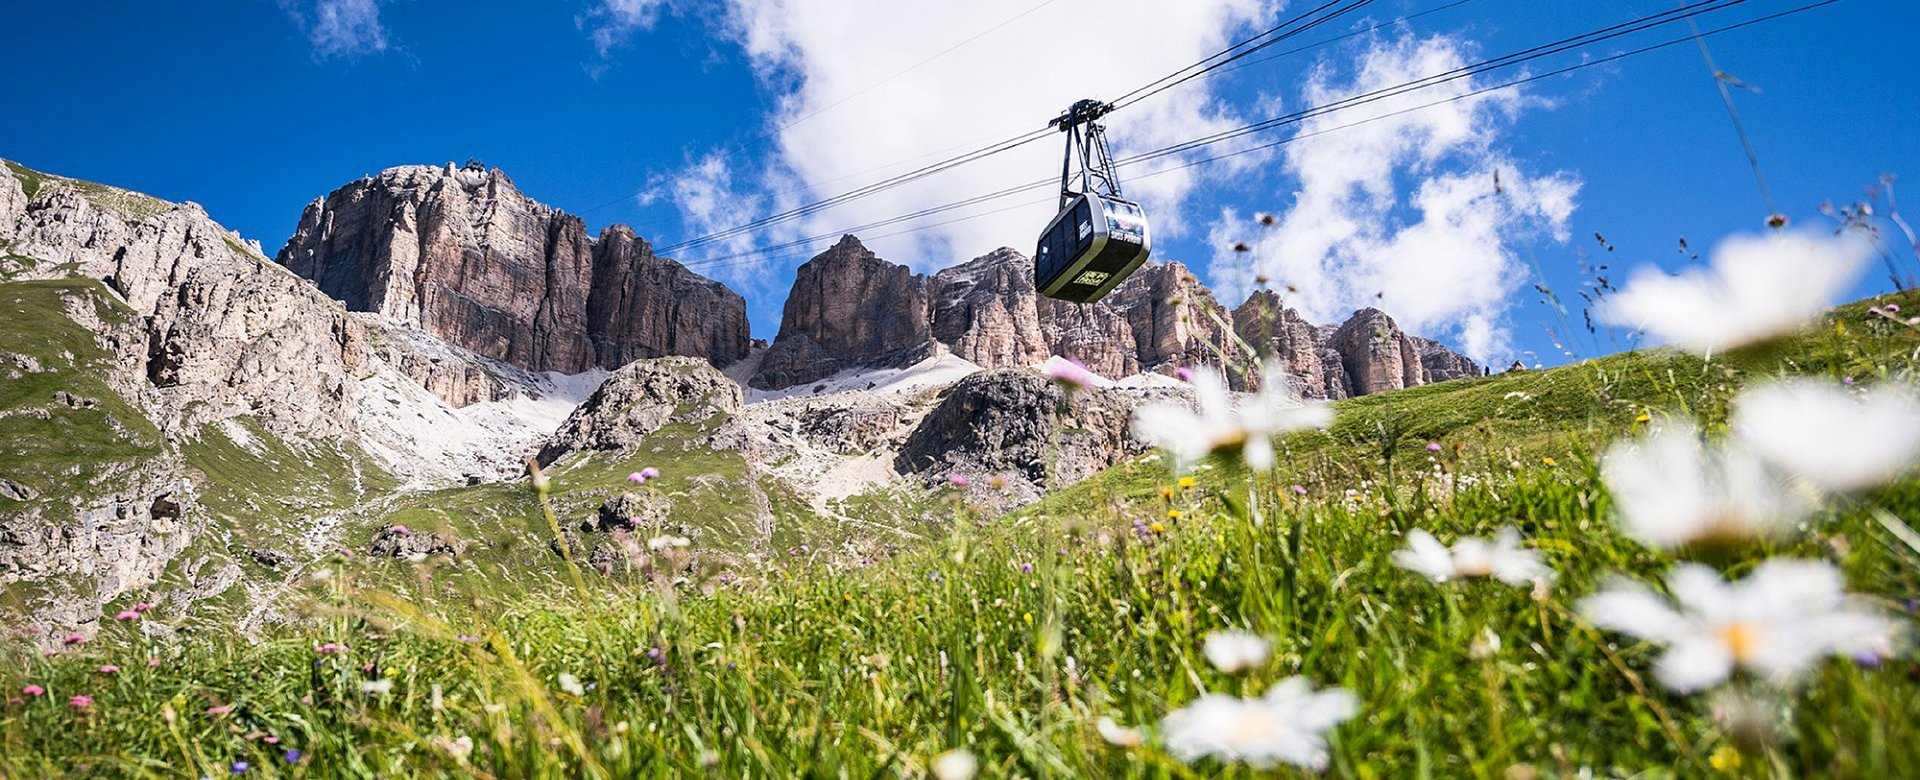 Holiday in Val di Fassa - Trentino